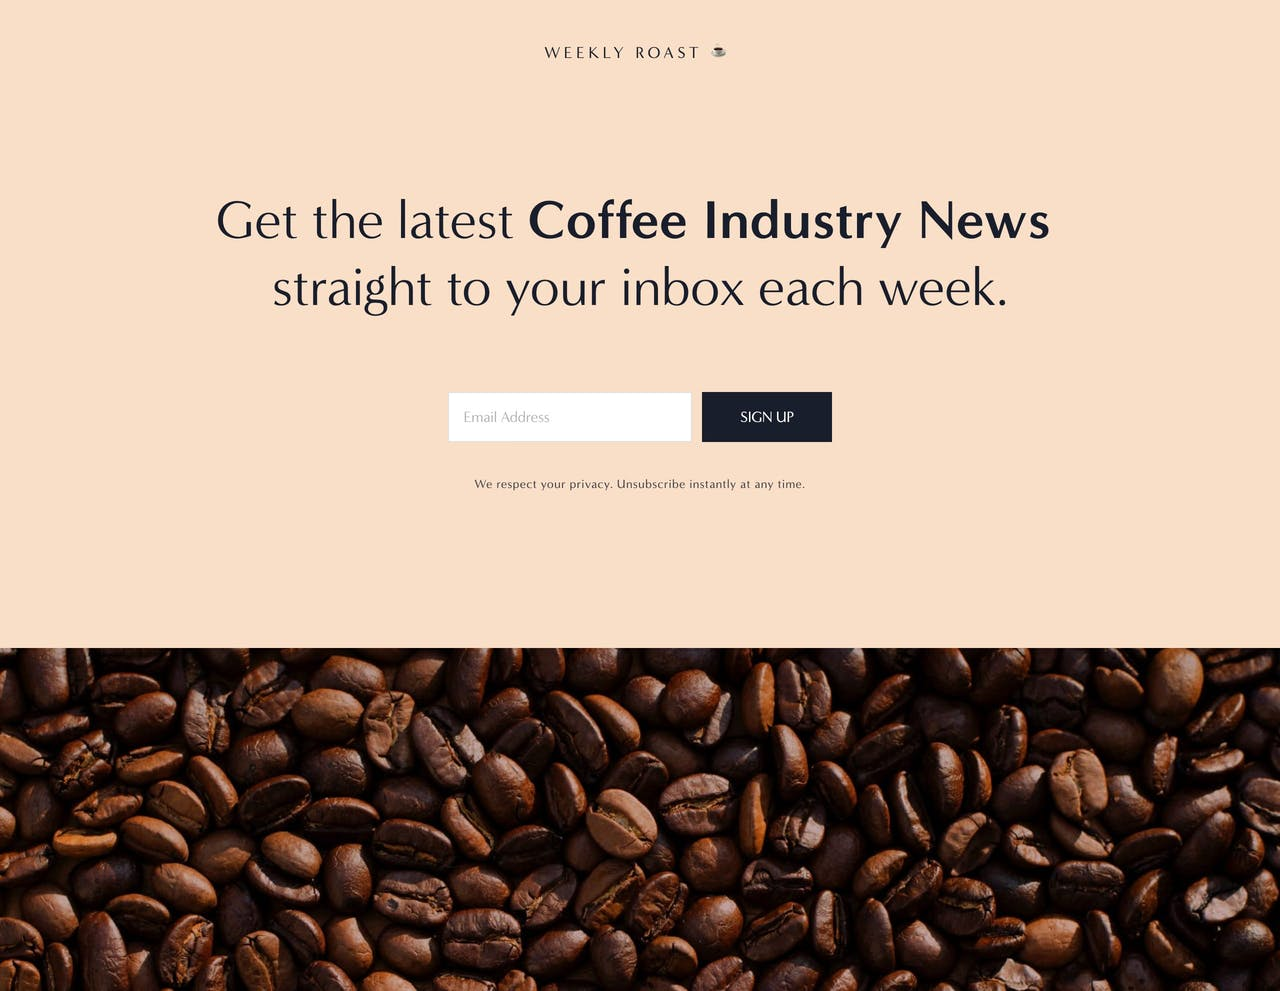 Preview of our Weekly Roast newsletter landing page Screenshot